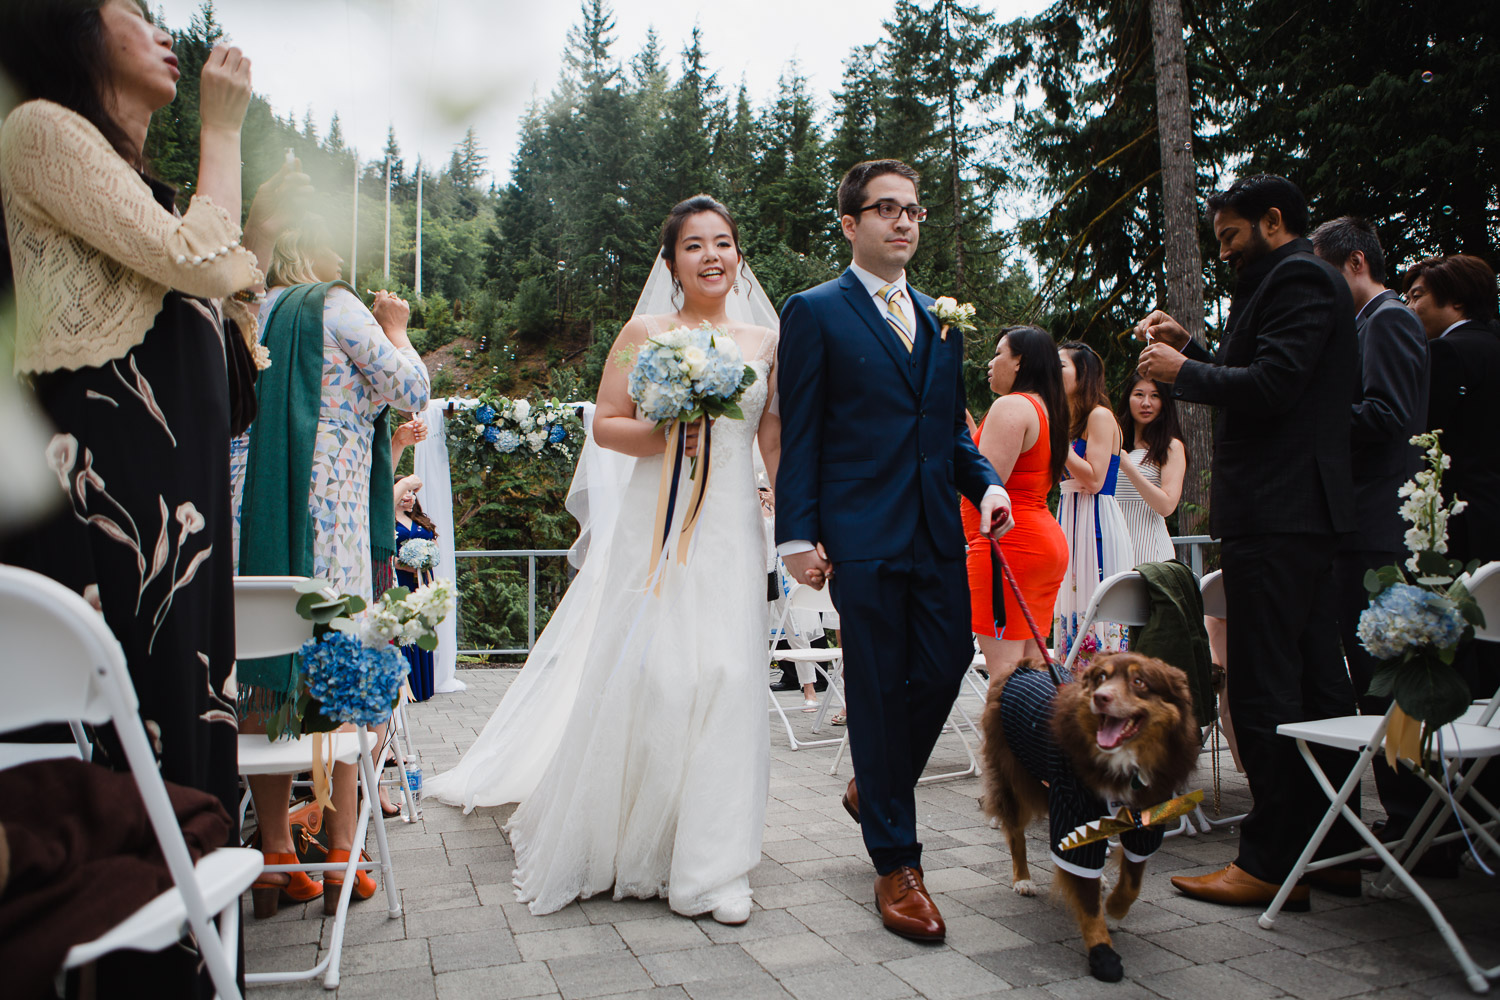 Furry Creek Wedding-31.jpg